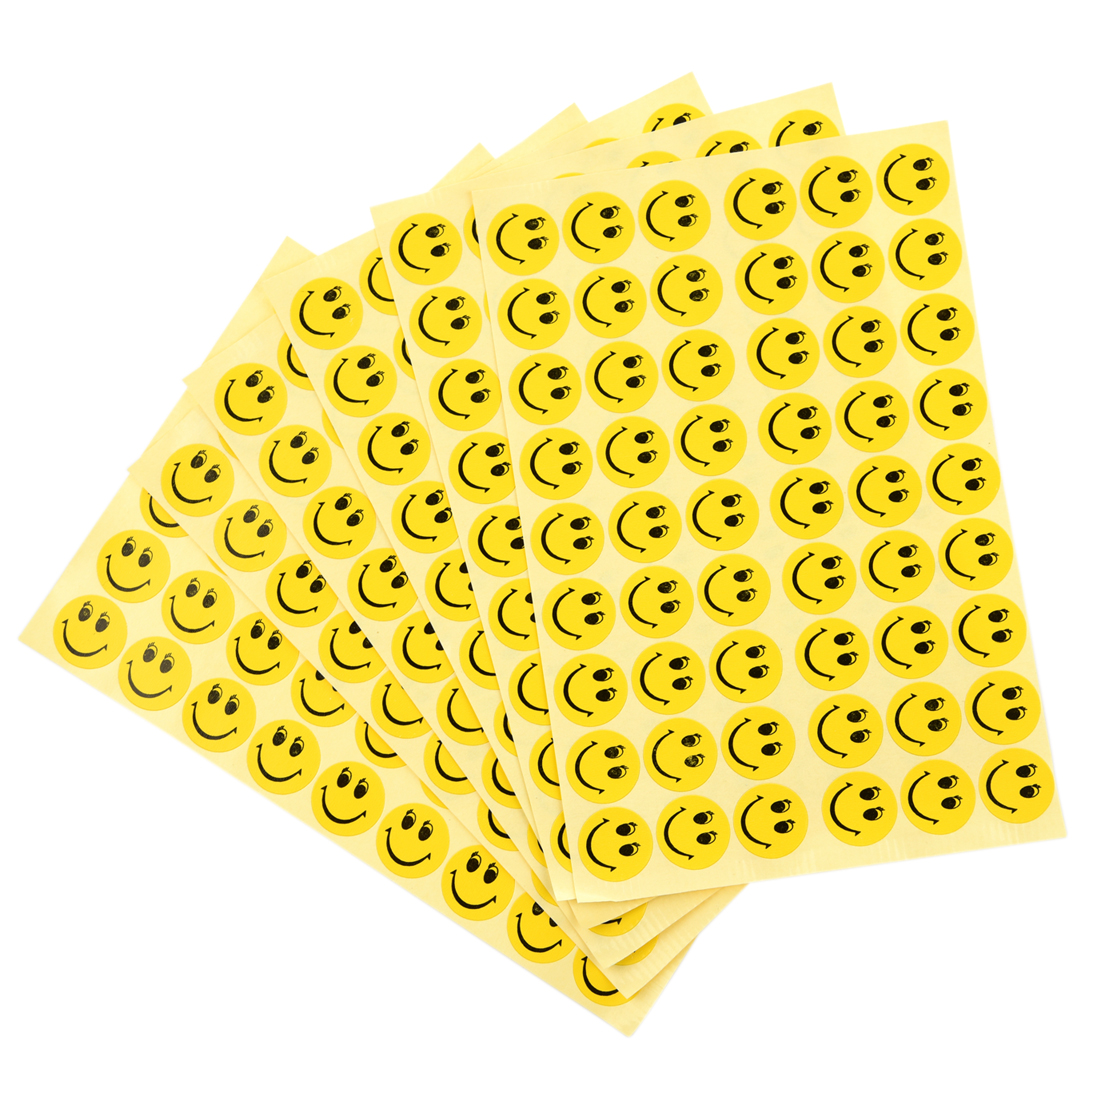 324 pcs Smiley Face Children Reward Merit Praise Stickers for School Teacher party Home324 pcs Smiley Face Children Reward Merit Praise Stickers for School Teacher party Home